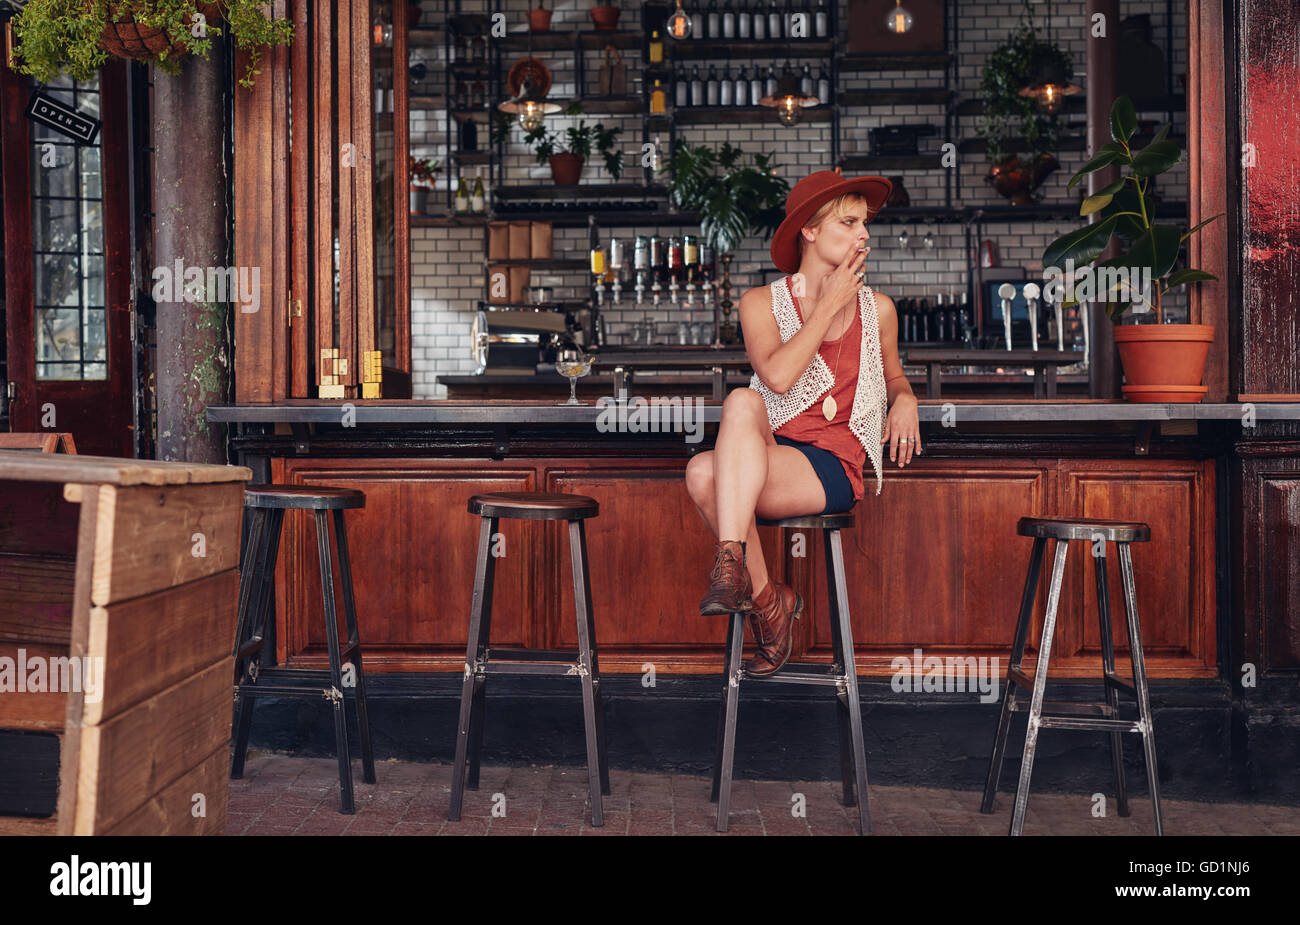 Young woman with hat smoking in a bar. Holding cigarette and looking away. - Stock Image